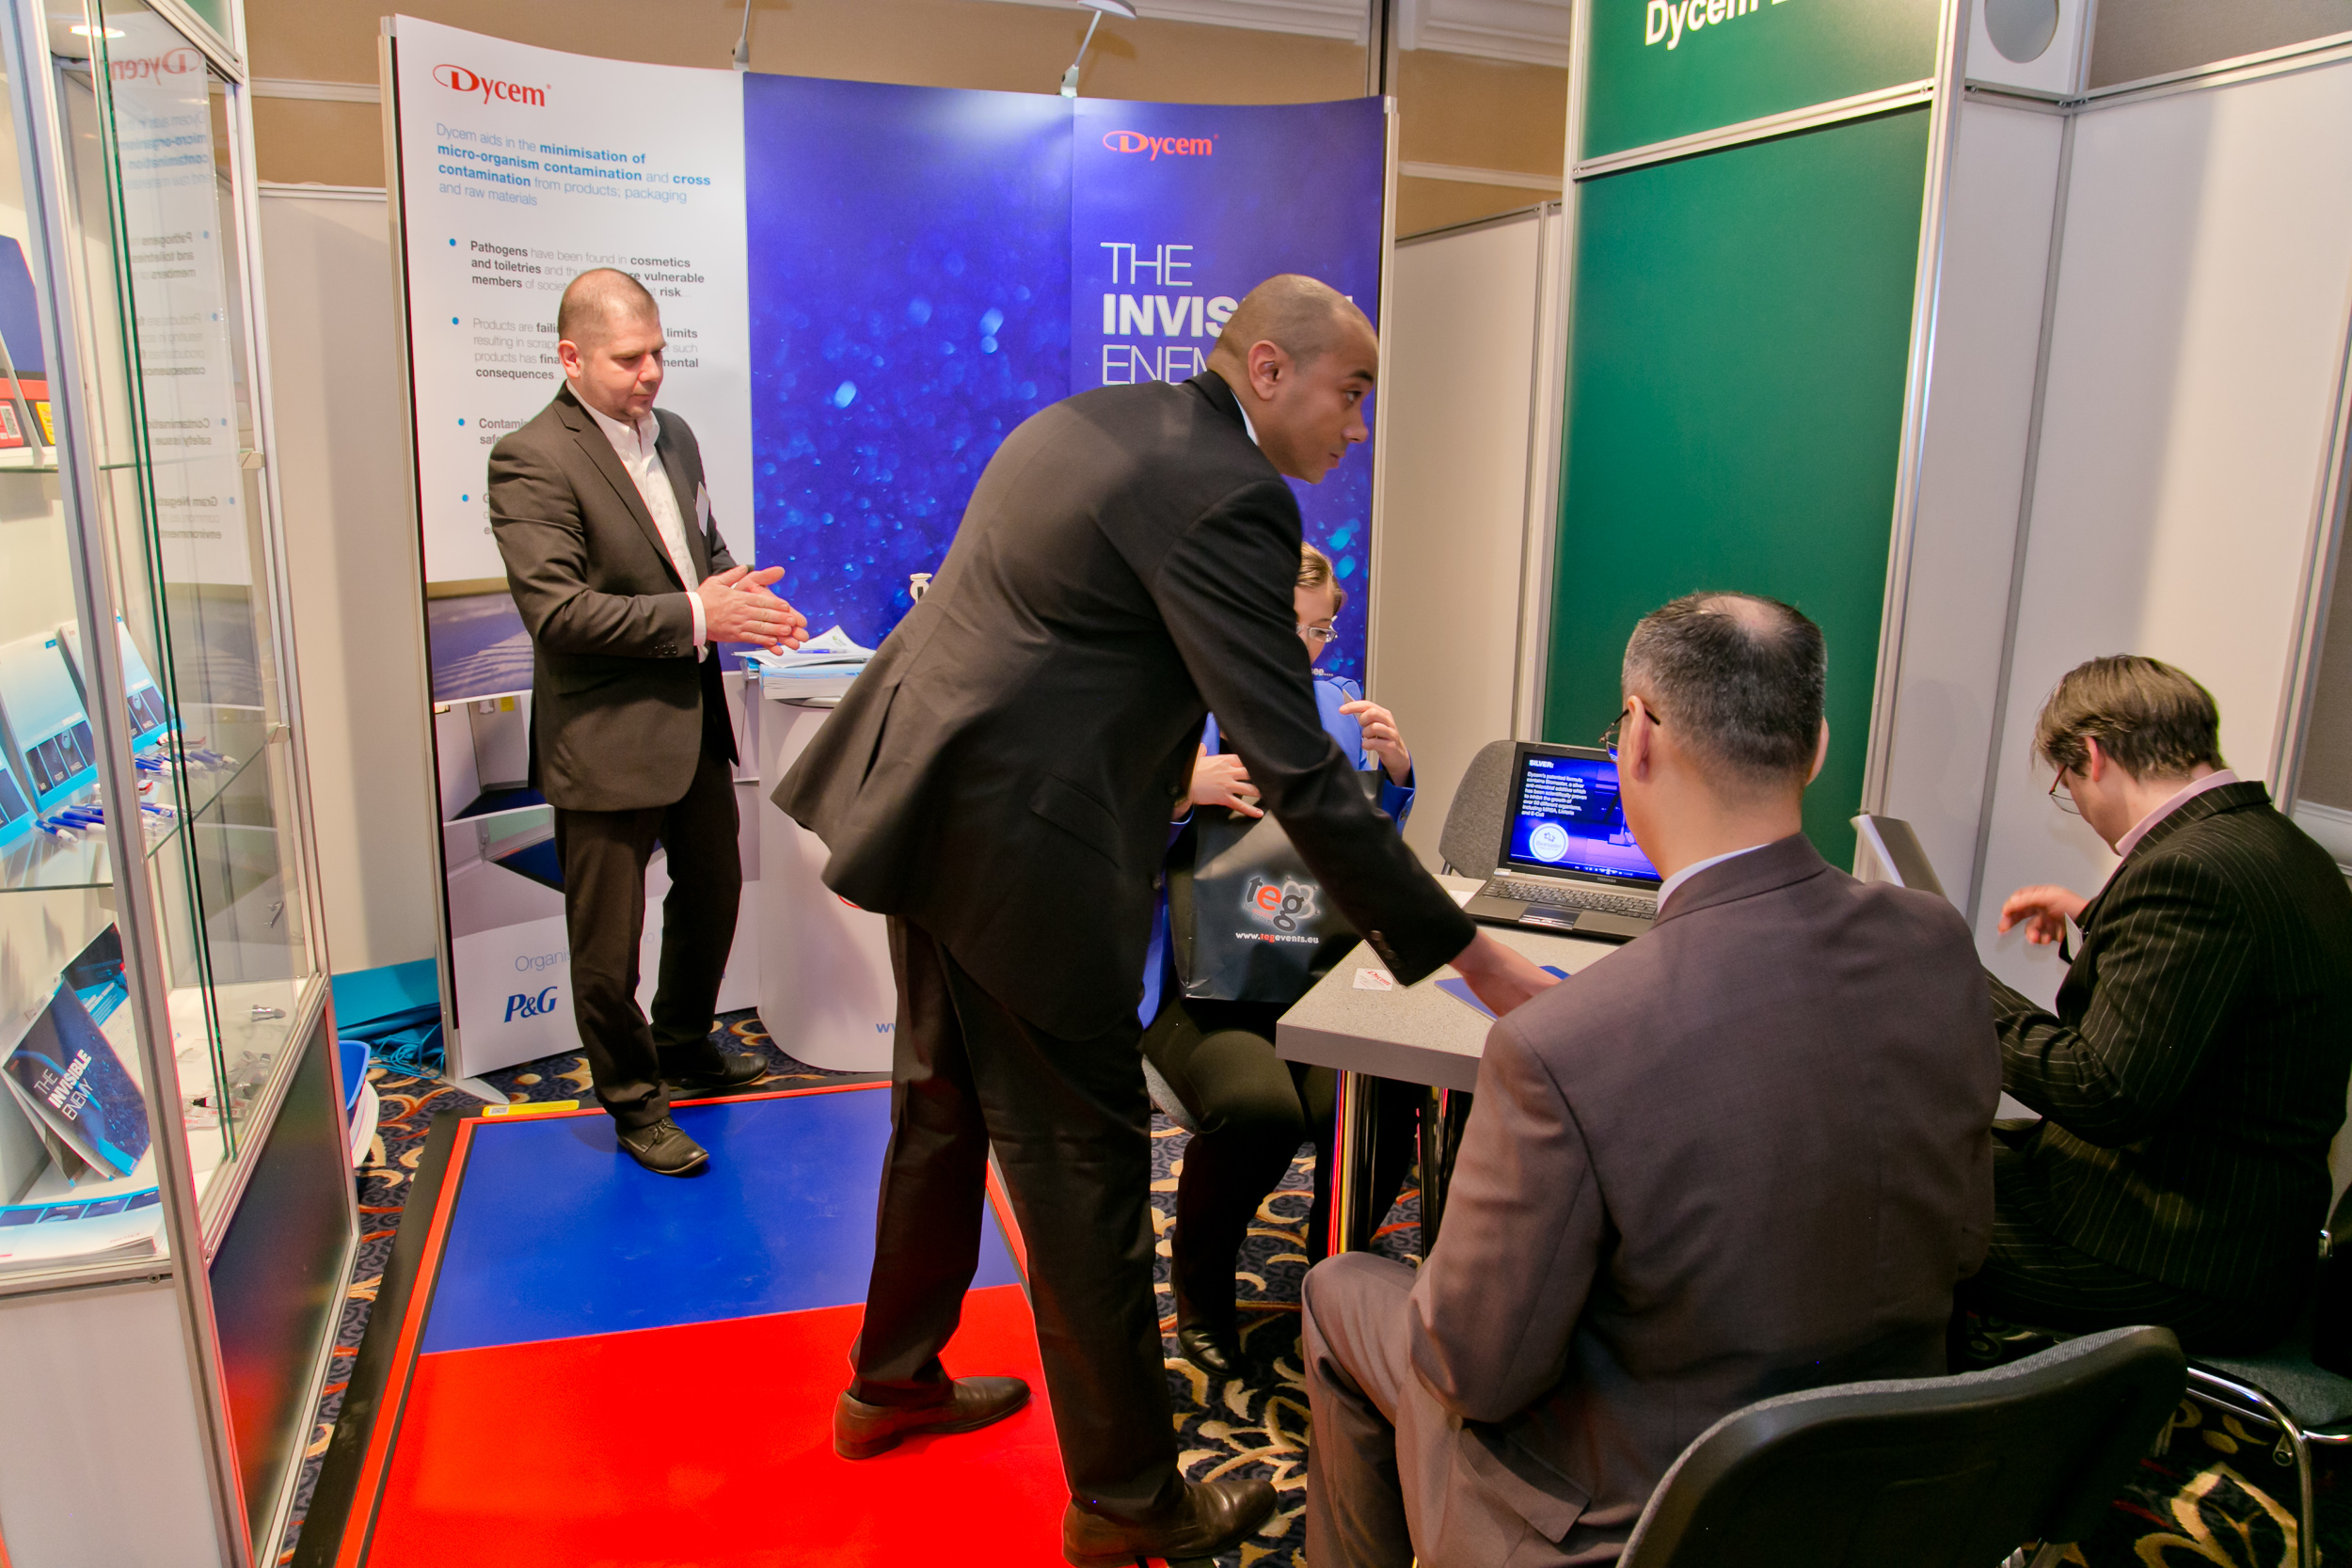 One-to-one meeting with Dycem at PHARM Connect 2015